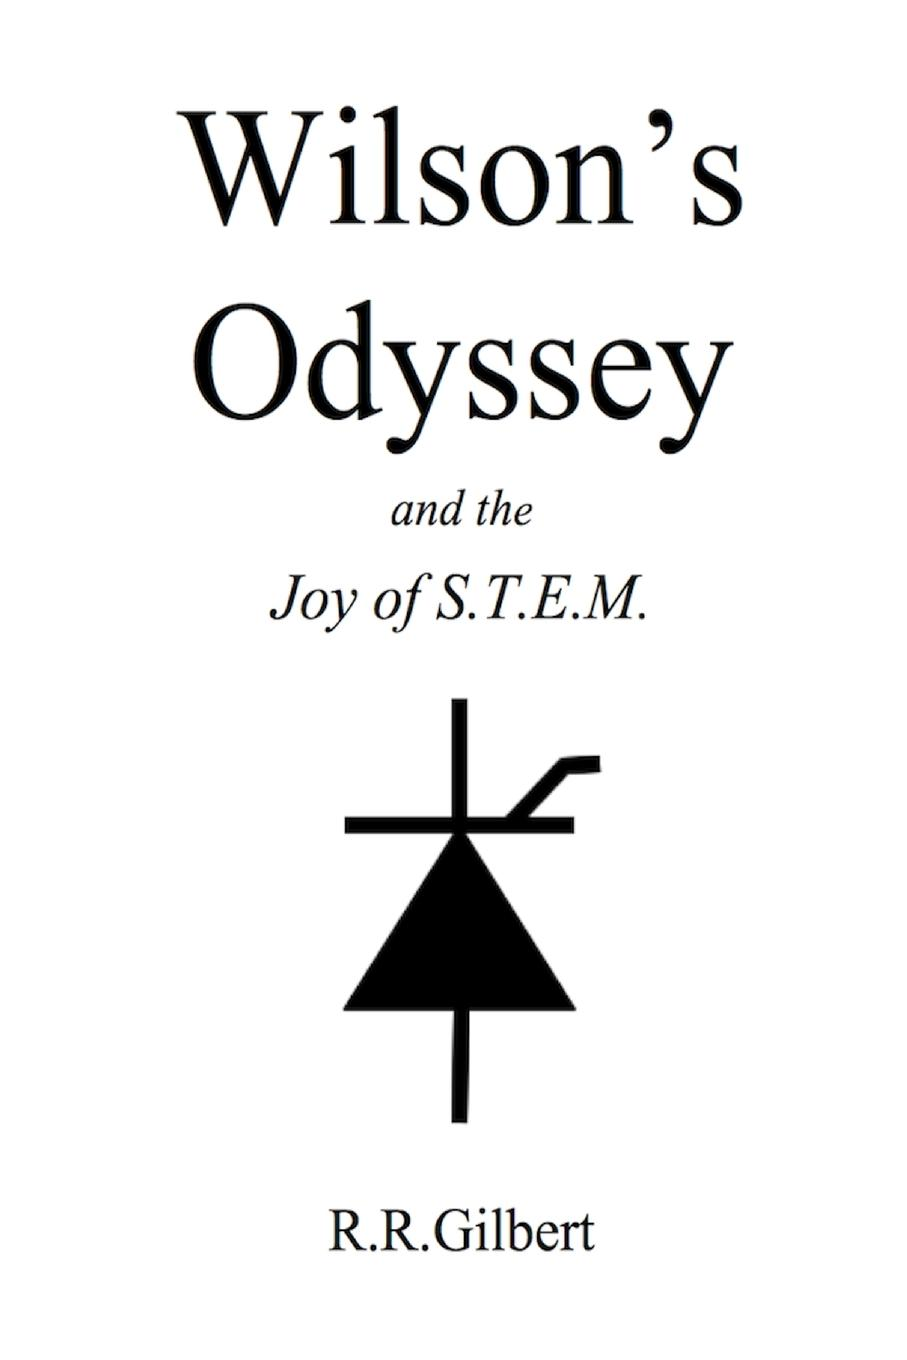 R.R. Gilbert Wilson.s Odyssey and the Joy of S.T.E.M. the odyssey of the aor